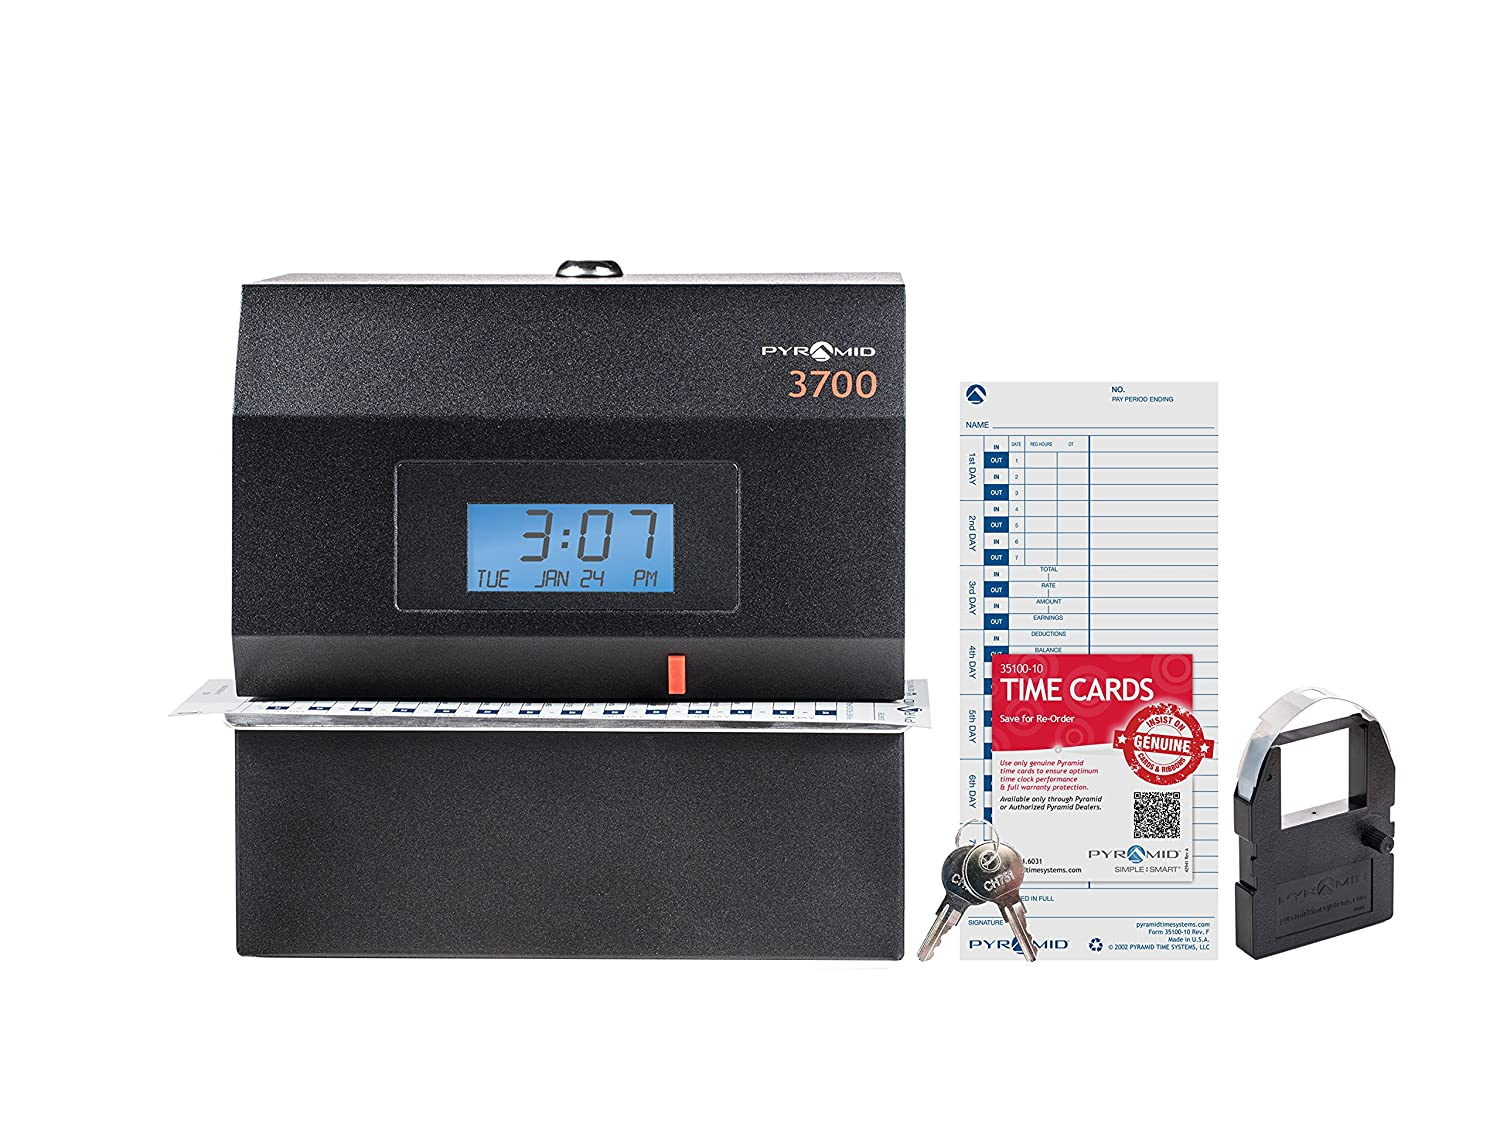 Pyramid 3700 Heavy Duty Steel Time Clock and Document Stamp - Made in the USA Pyramid Time Systems